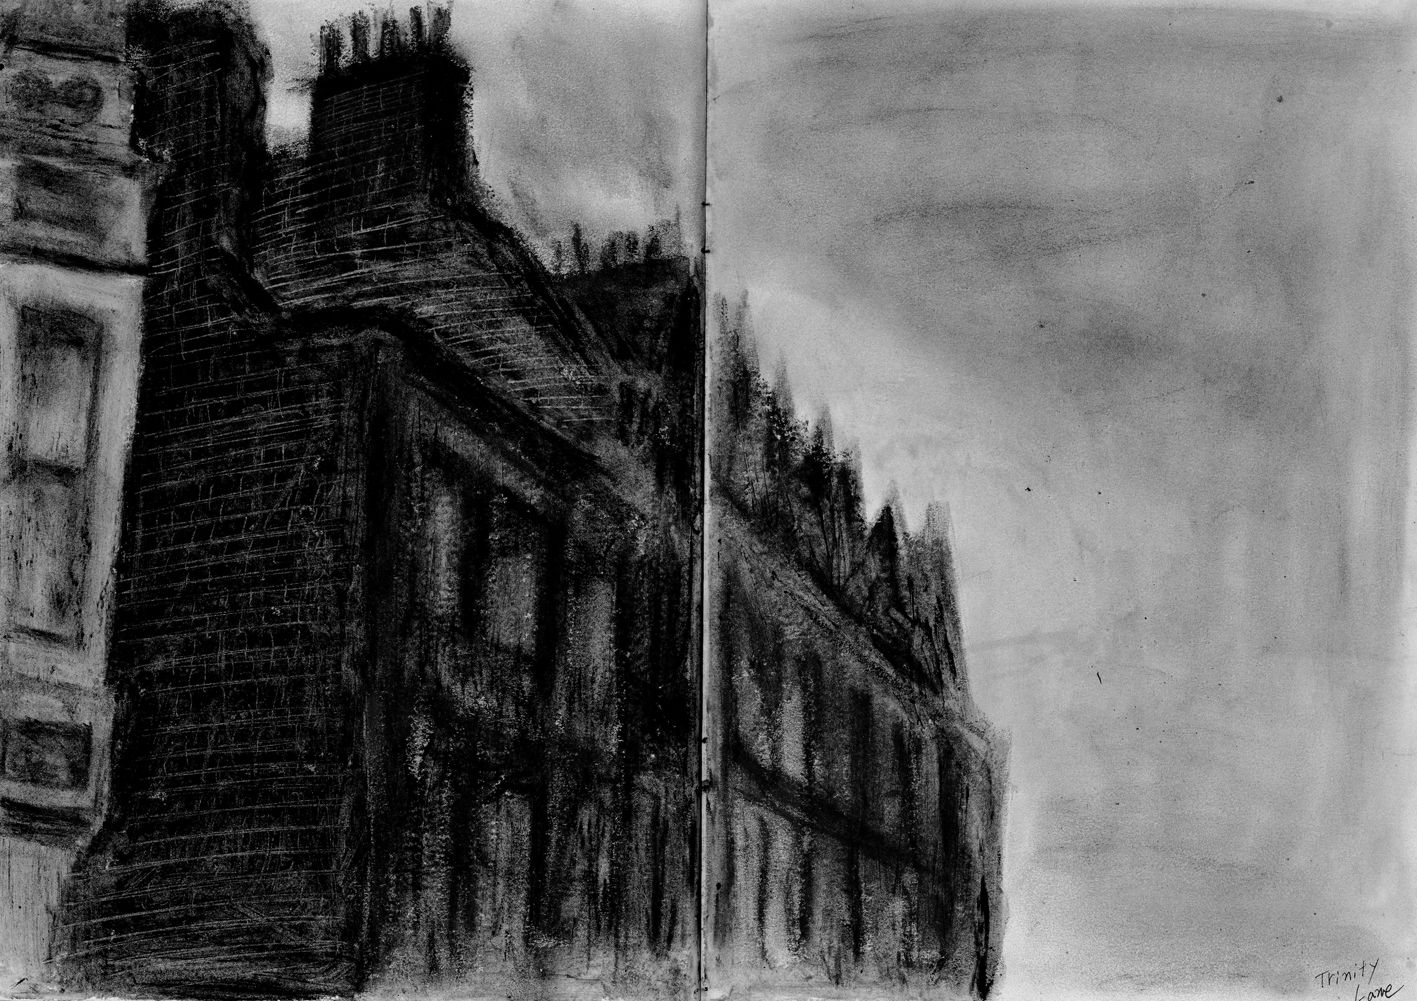 Charcoal and oil bar - Trinity Lane in the Cambridge city.